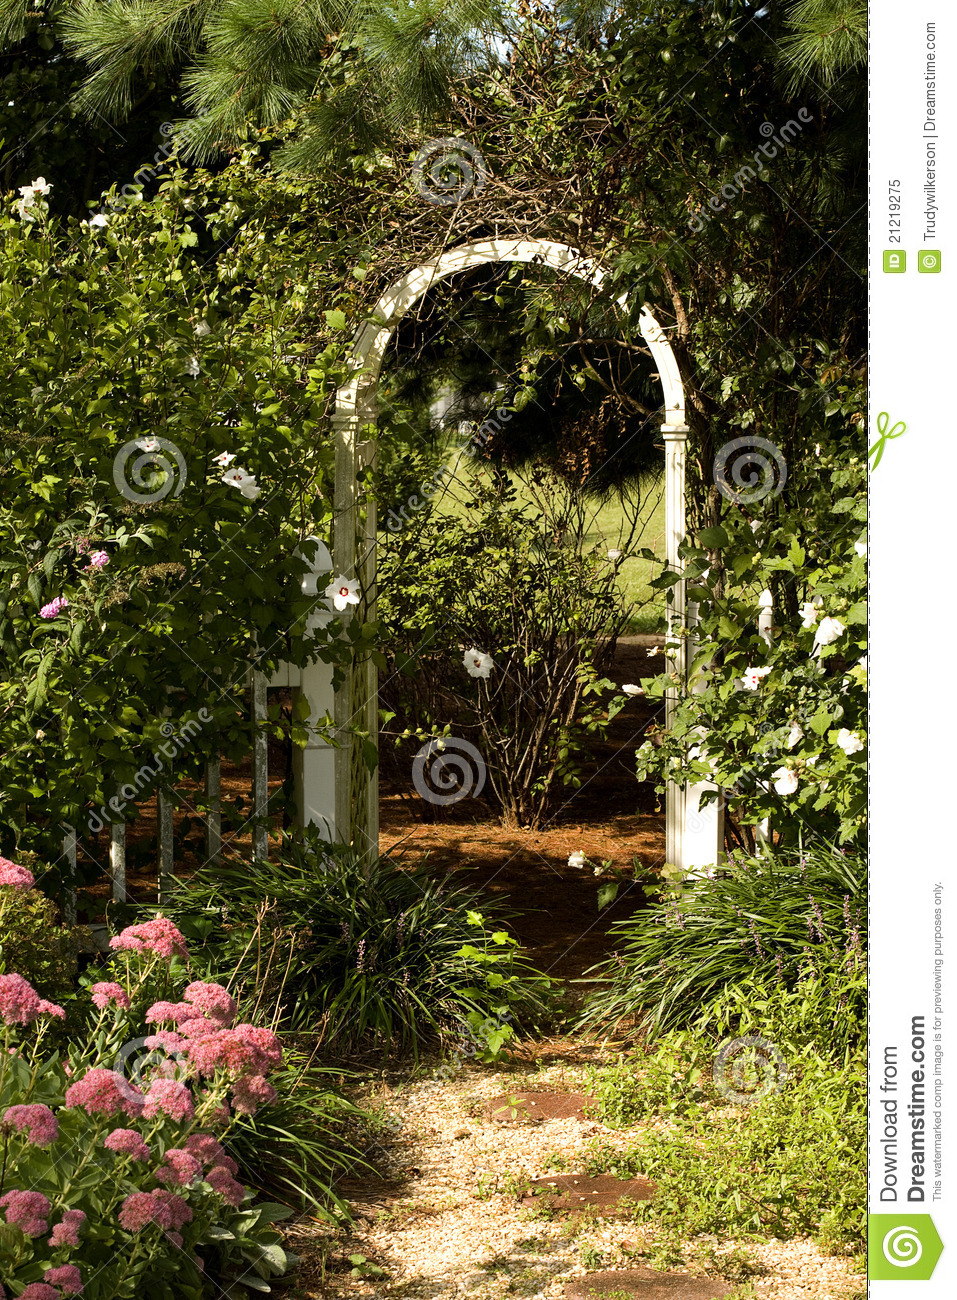 Trells in Morning Sun stock image. Image of trellis, pathway - 21219275